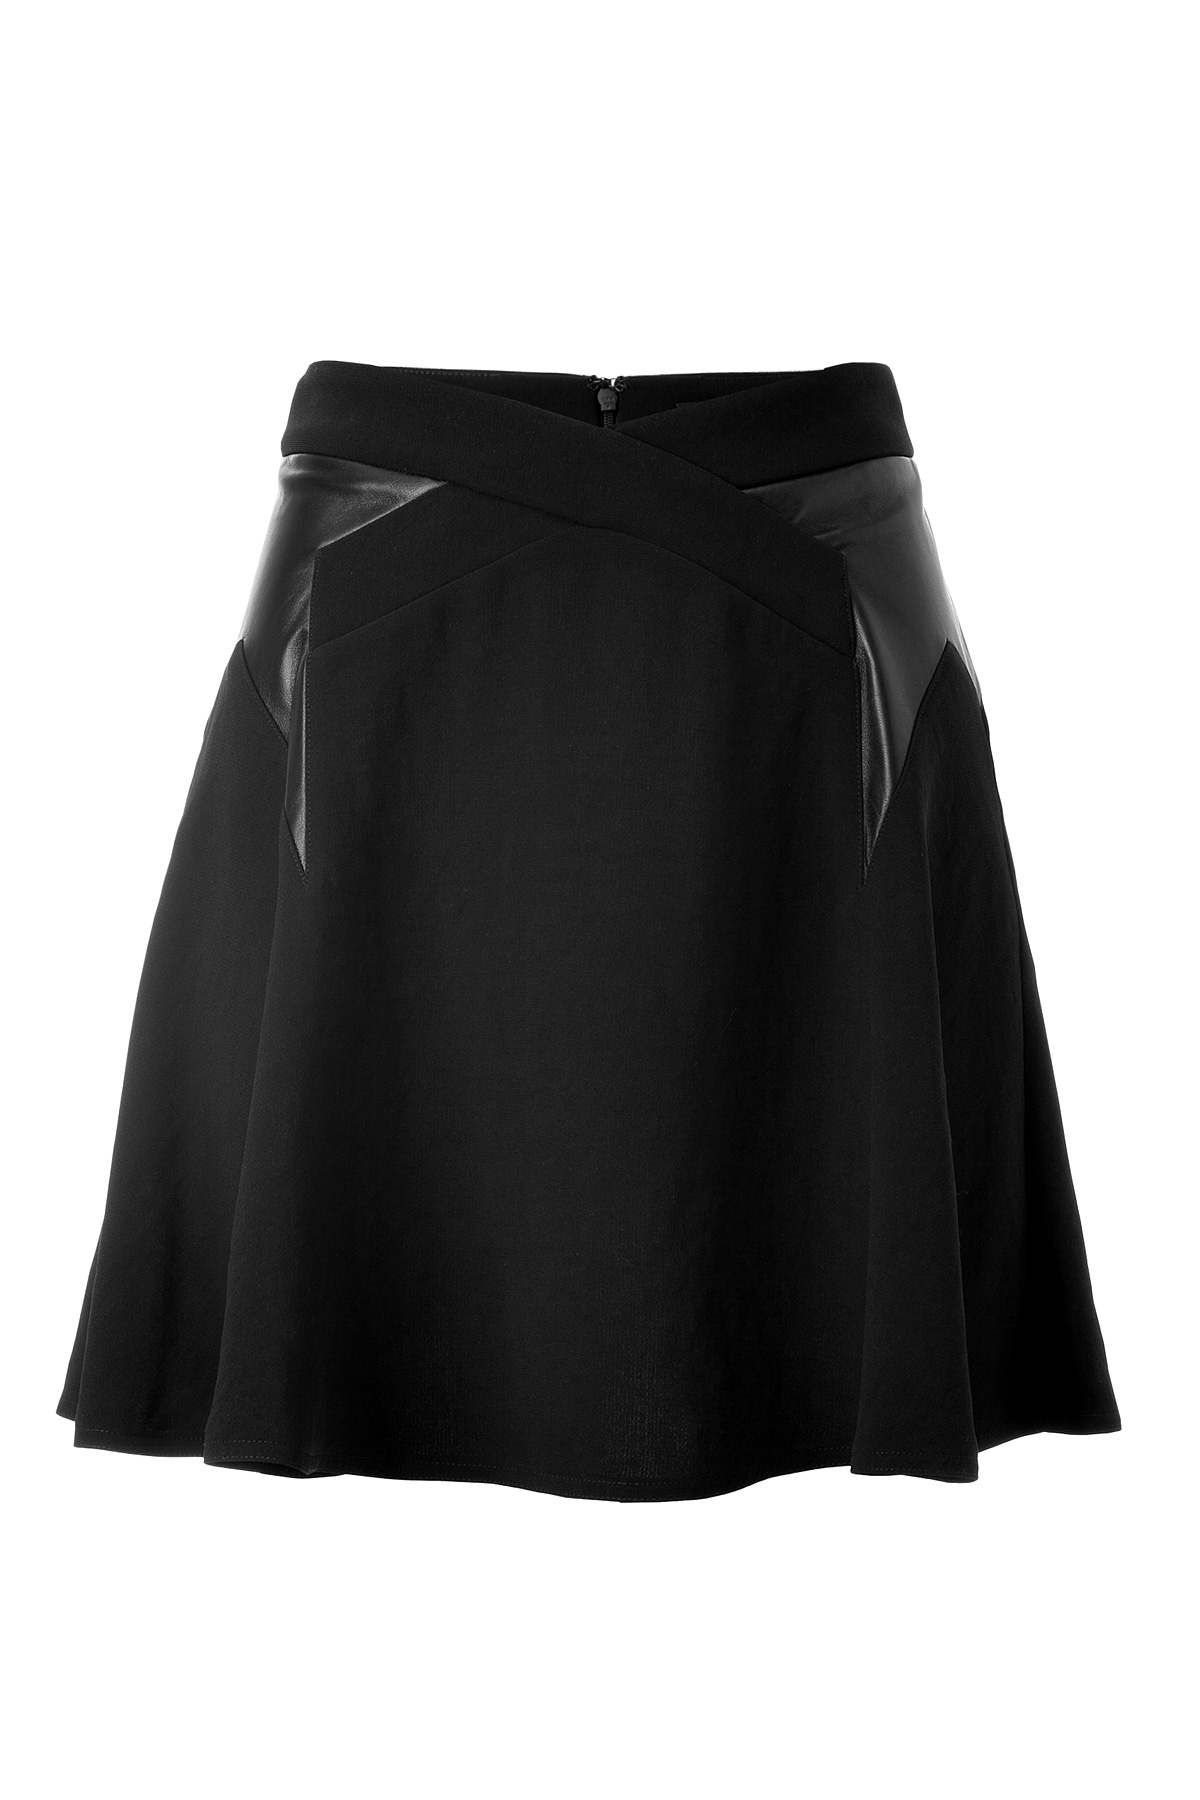 the kooples a line skirt with leather trim in black lyst